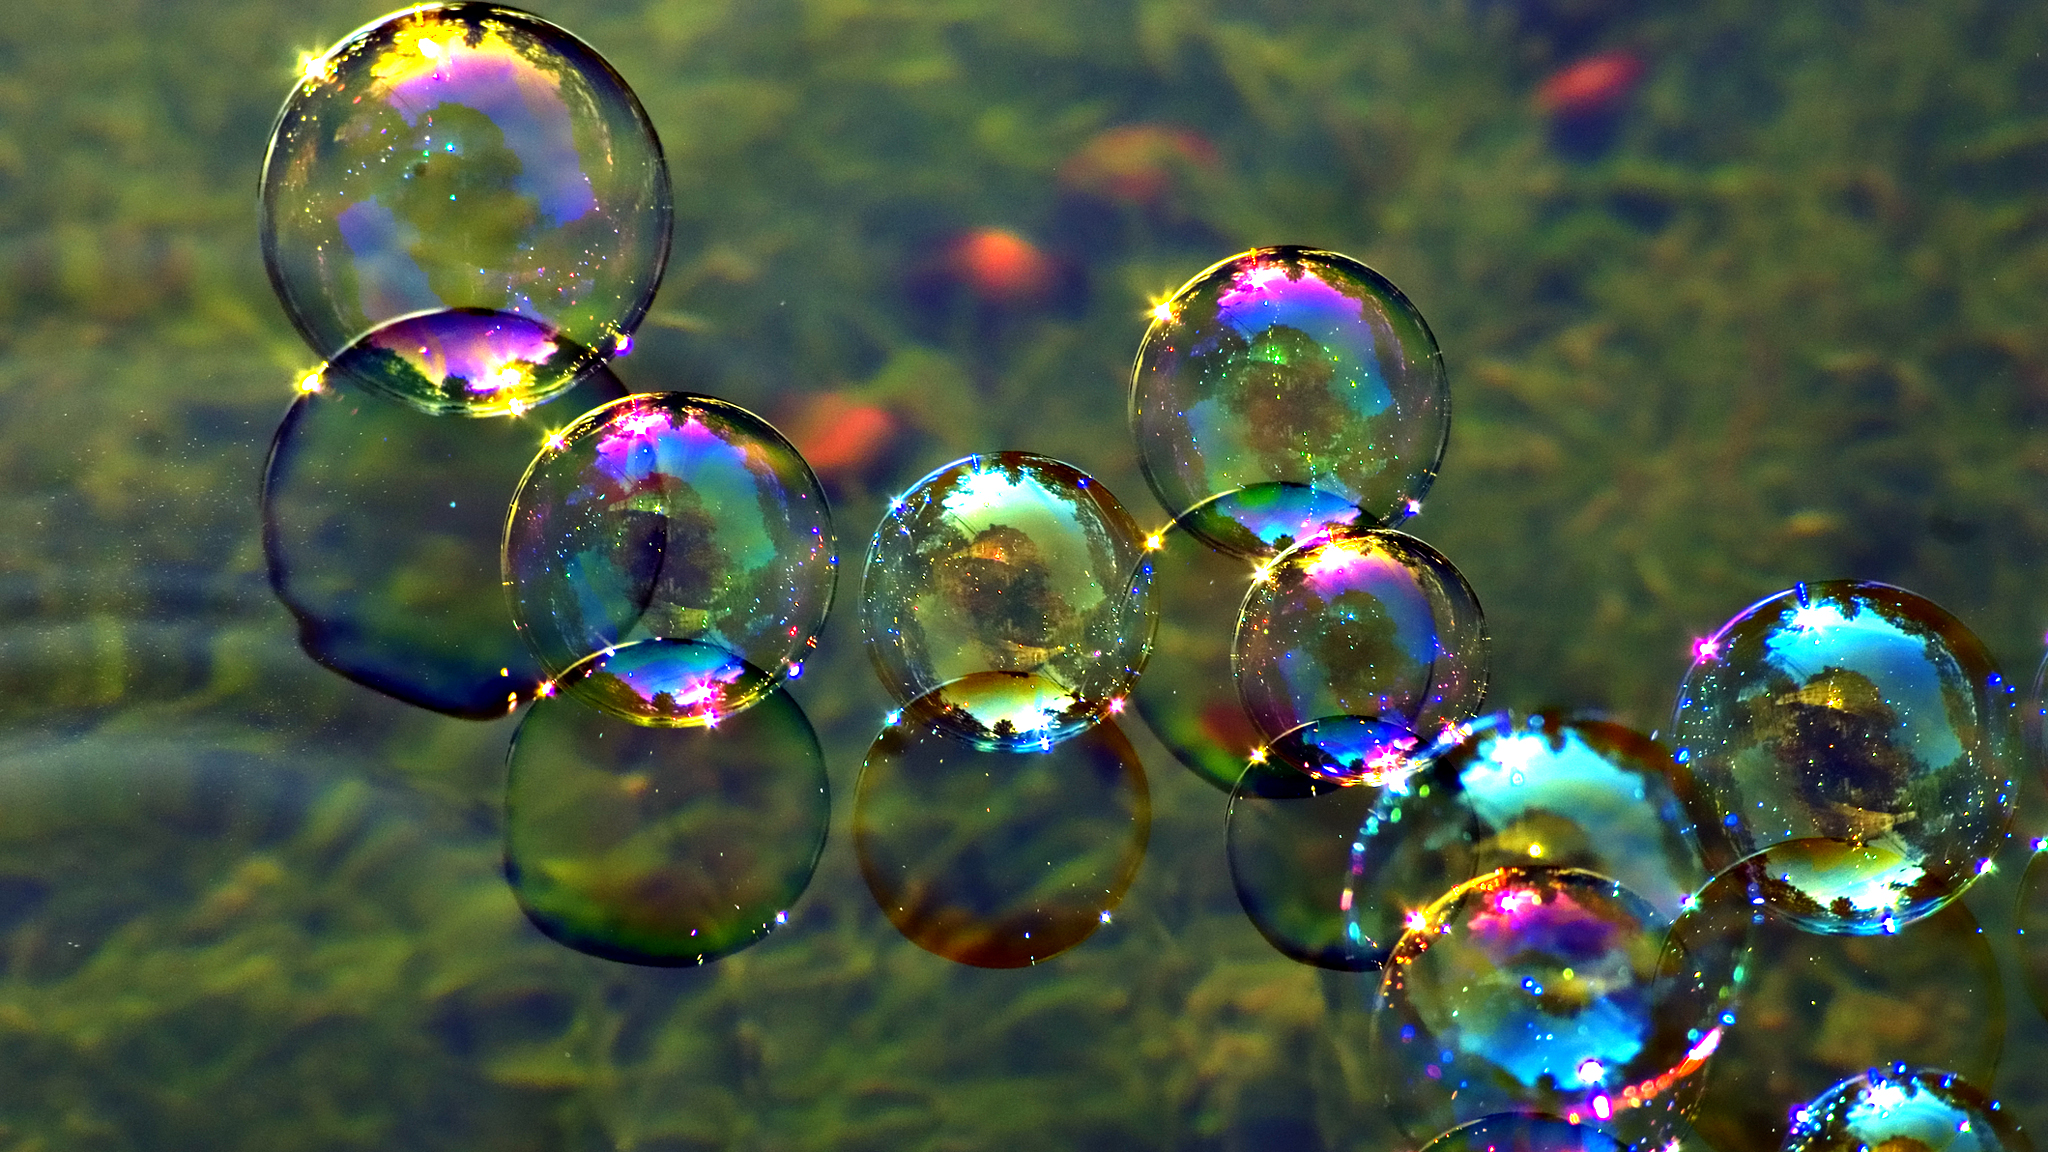 http://www.dreamstime.com/royalty-free-stock-photo-soap-bubbles-water-image21769735